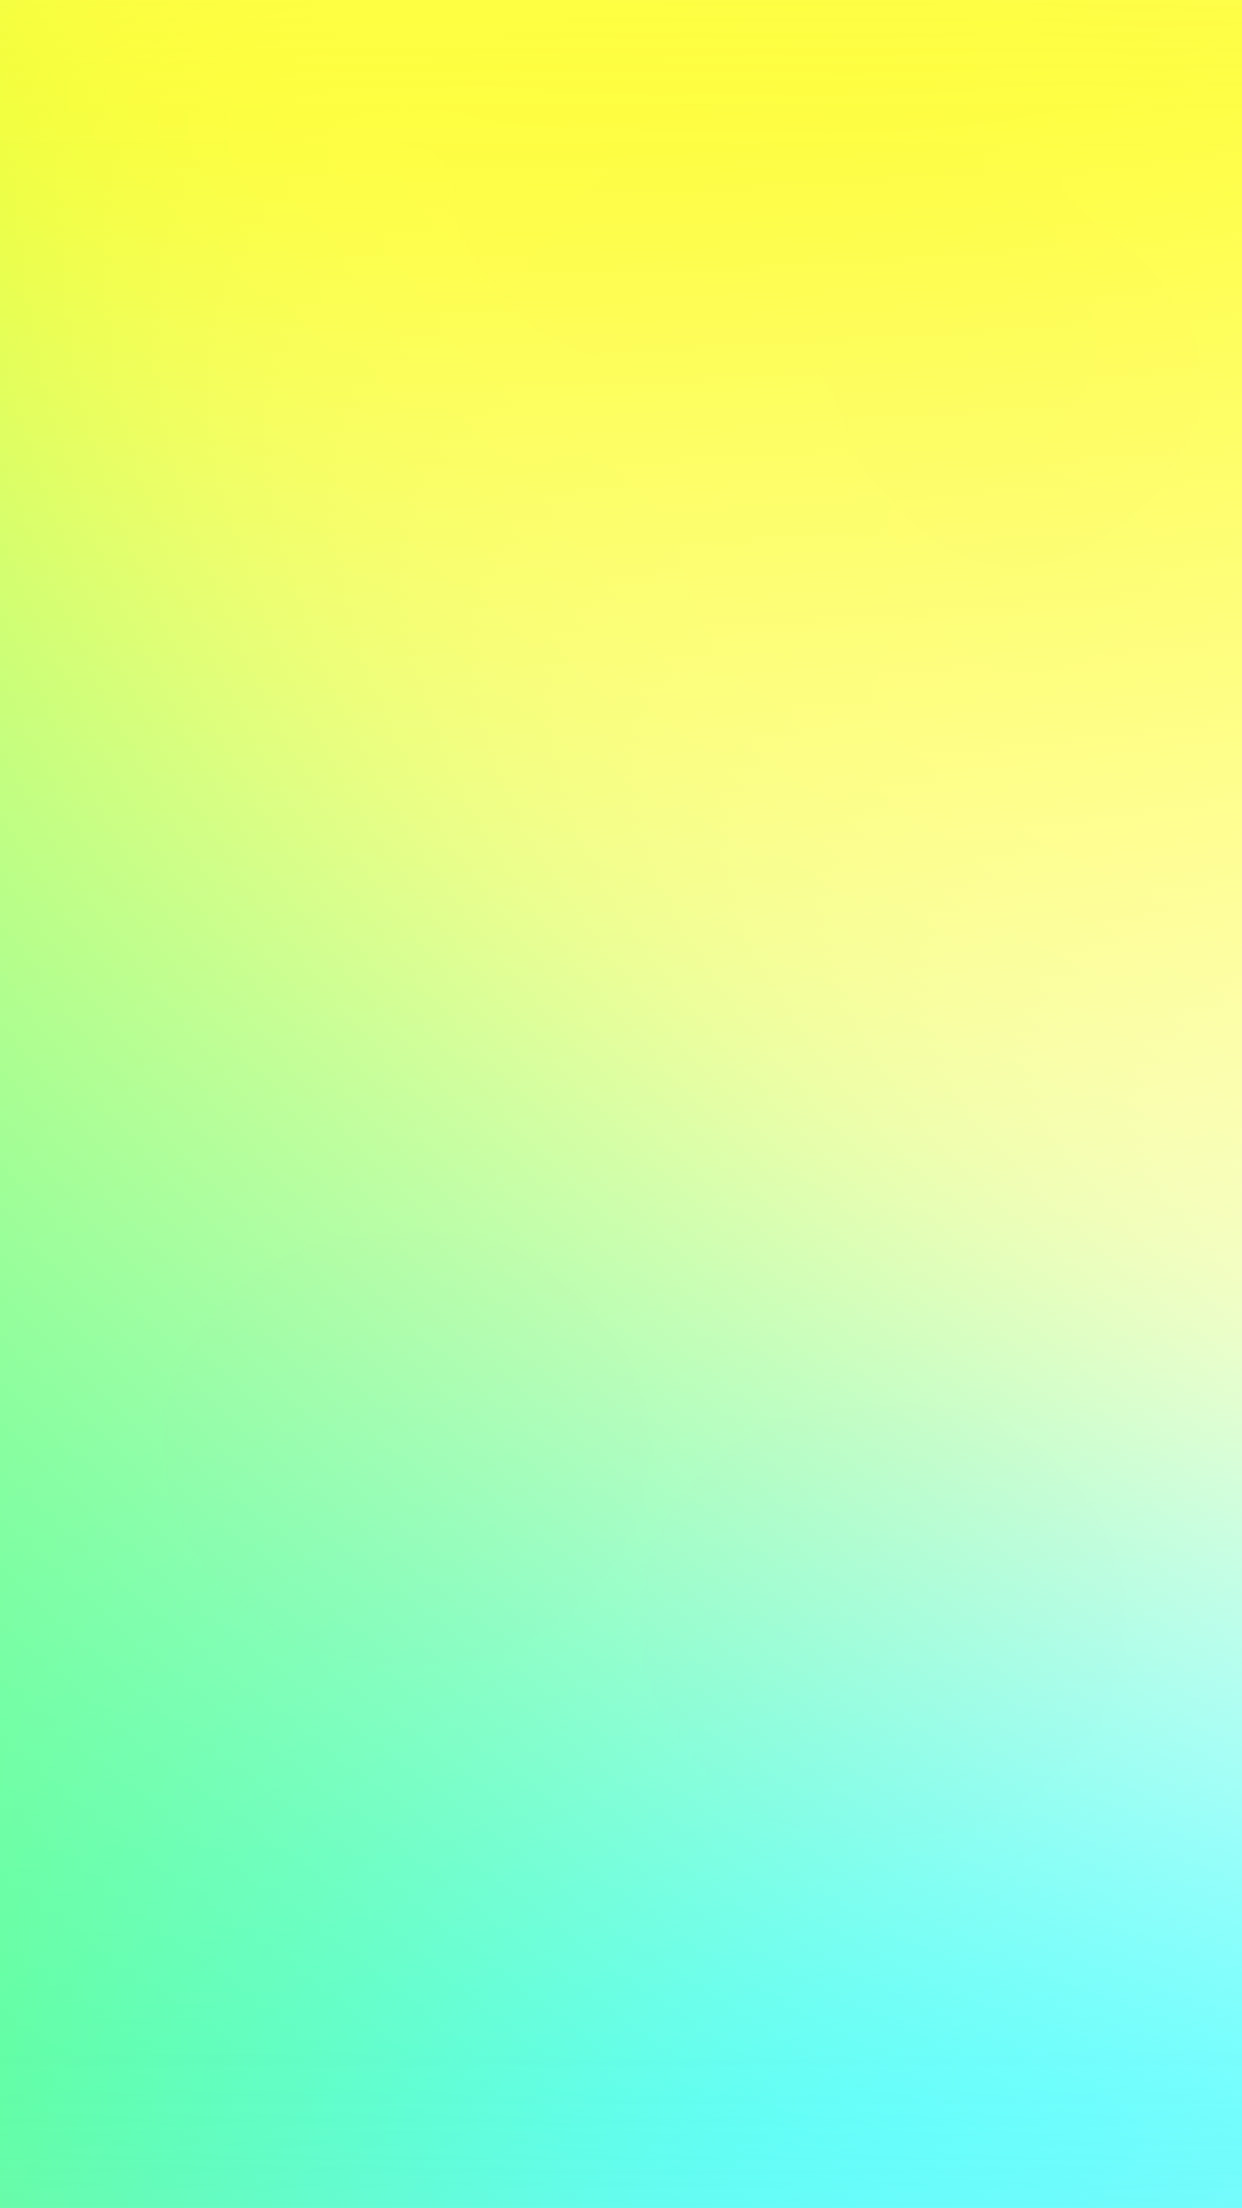 Bright Wallpapers For Iphone 6 Sg85 Bright Yellow Neon Green Sunny Gradation Blur Papers Co